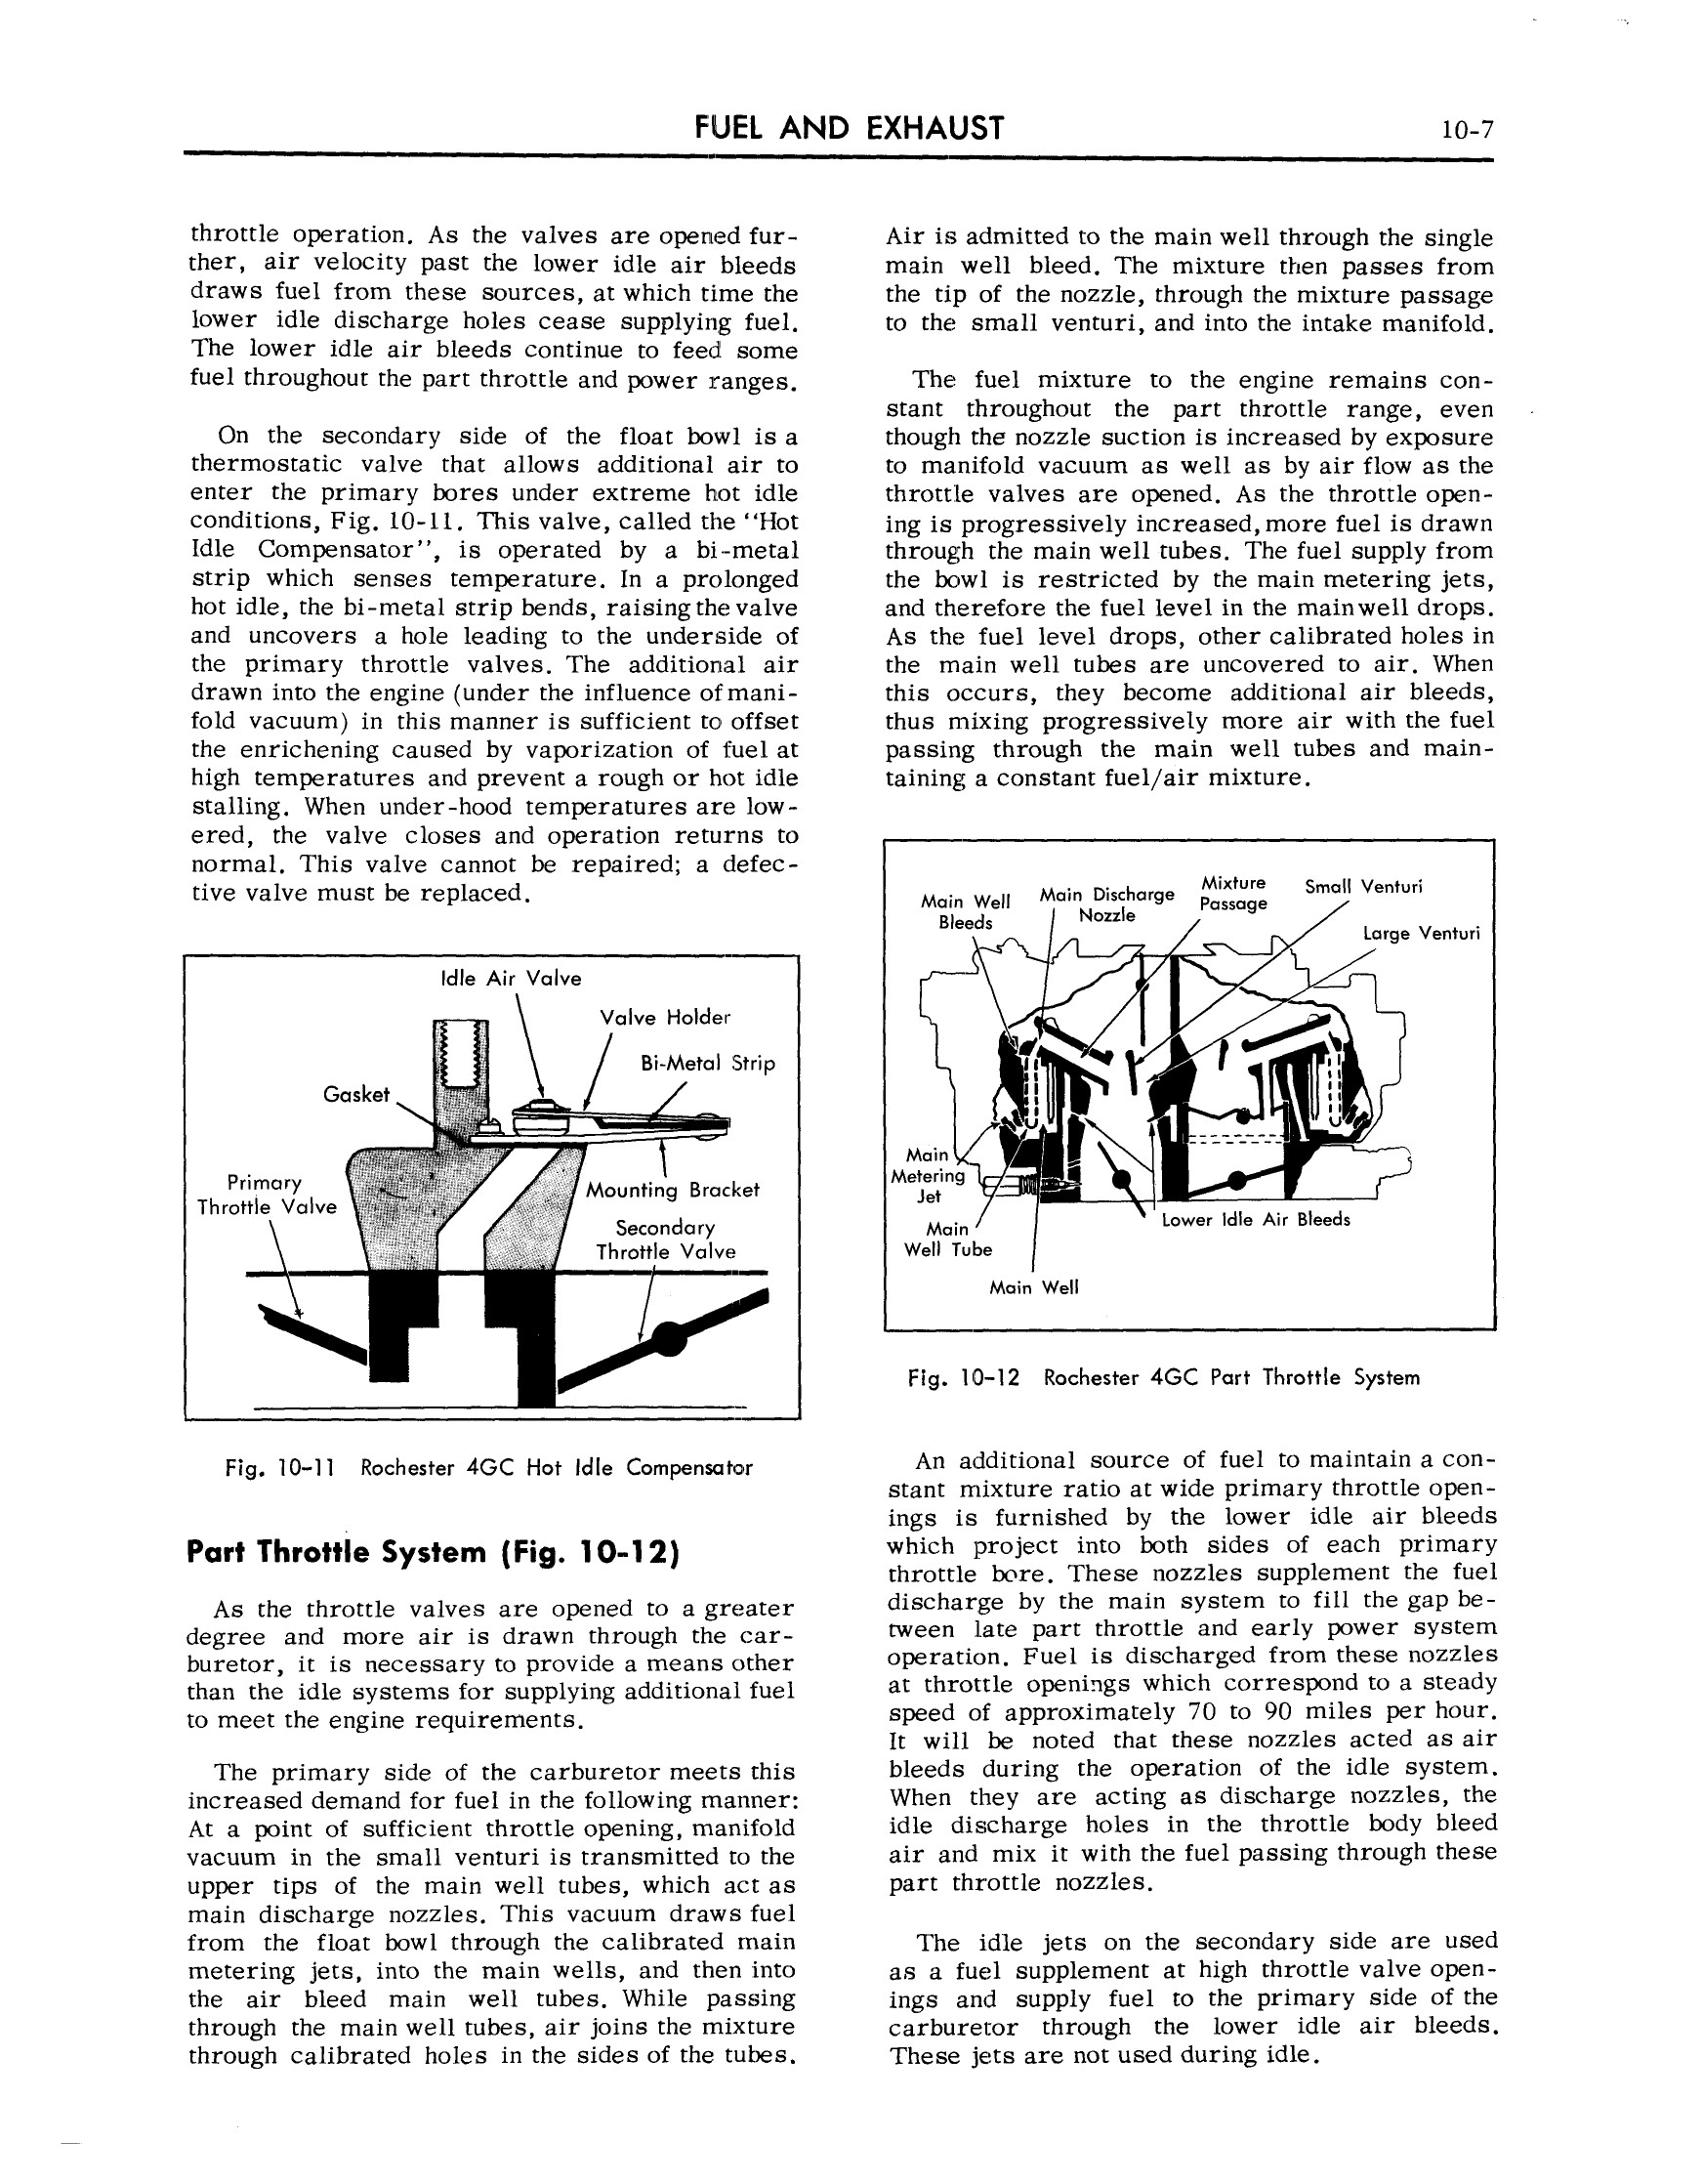 1959 Cadillac Shop Manual- Engine Fuel and Exhaust Page 7